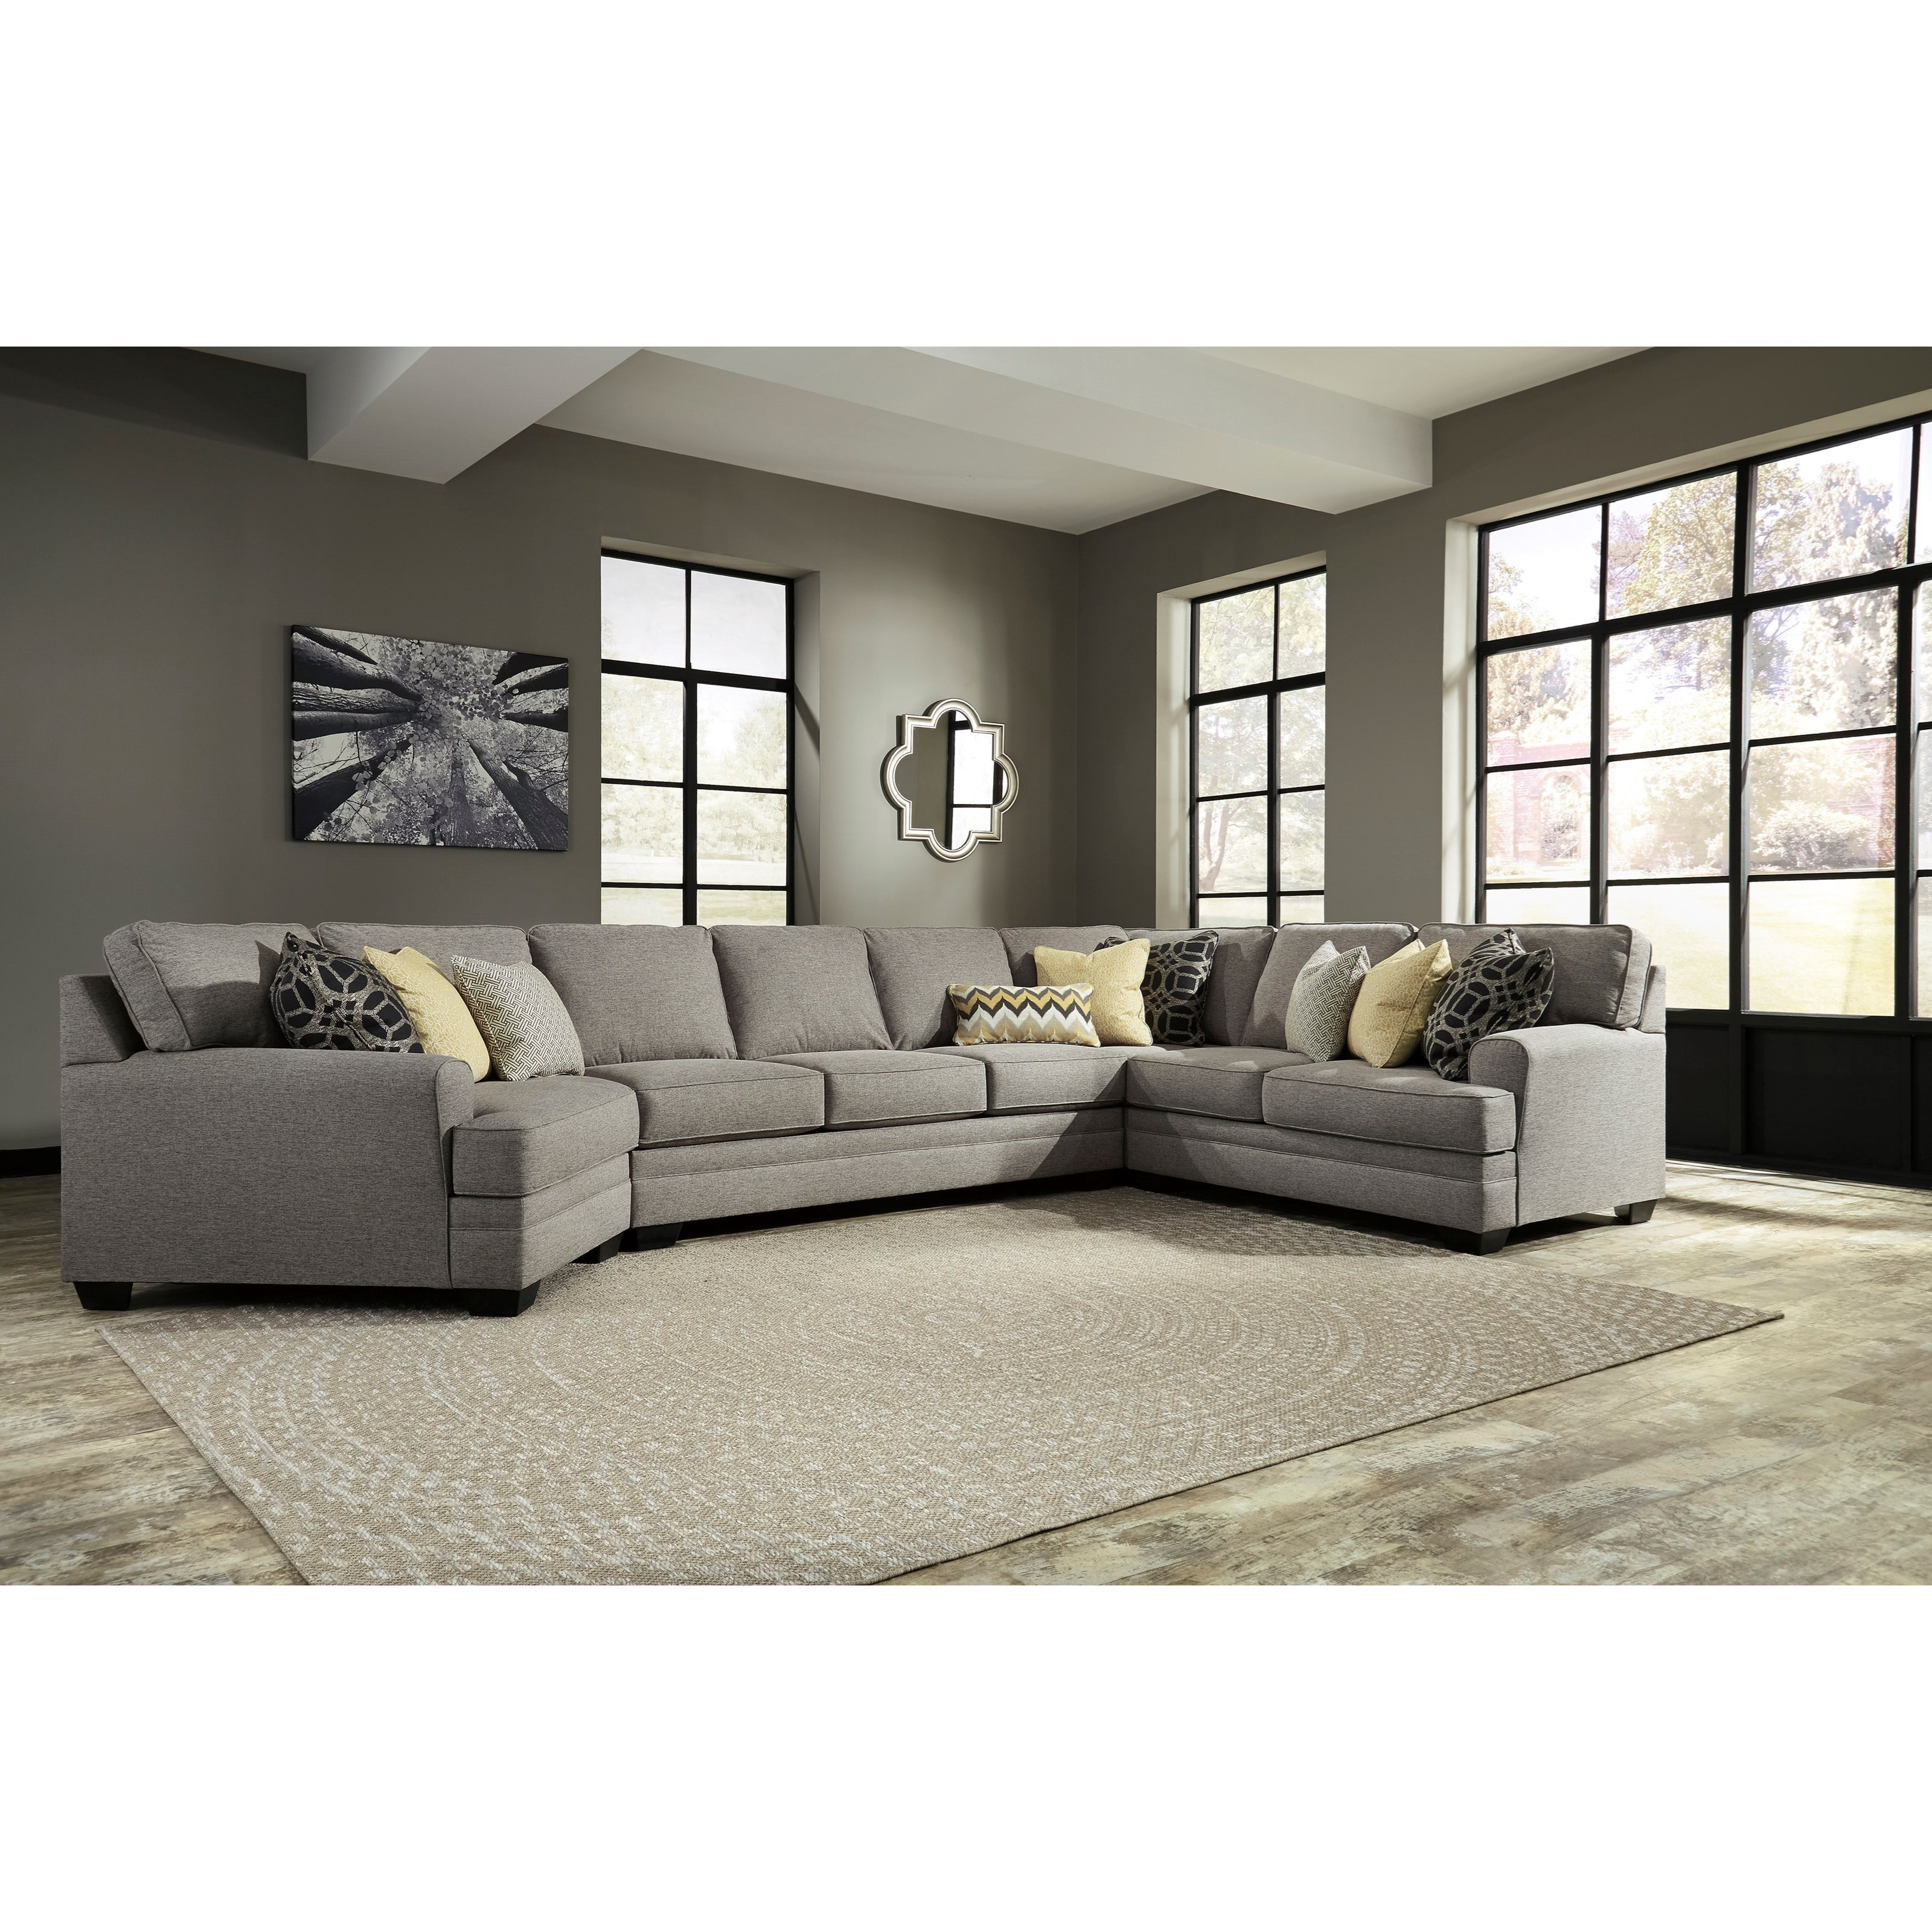 Benchcraft cresson contemporary 4 piece sectional w for 4 living furniture